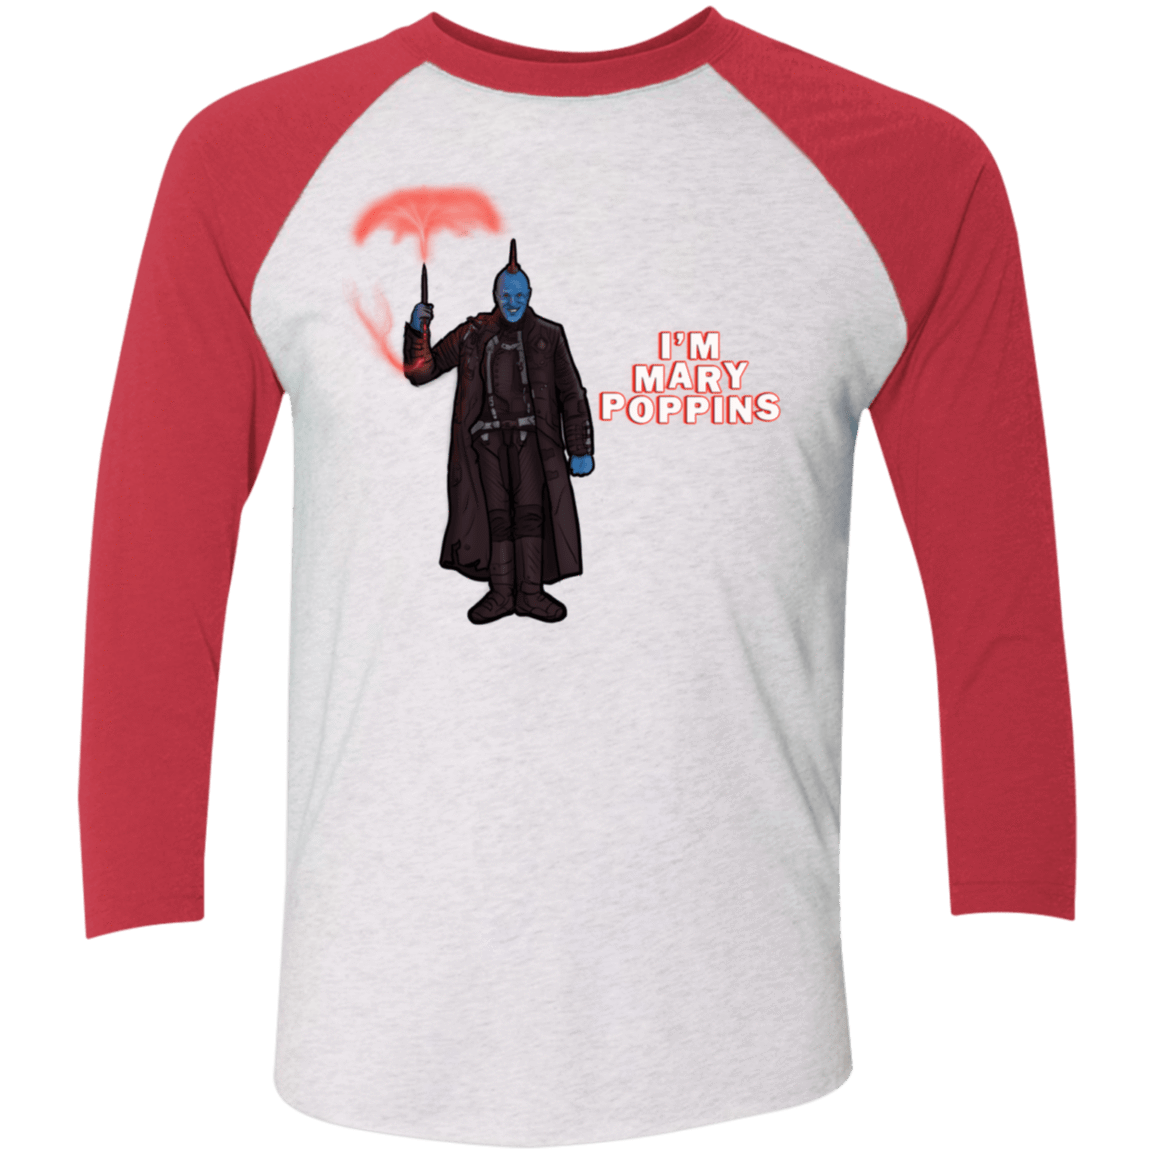 T-Shirts Heather White/Vintage Red / X-Small Yondu Poppins Men's Triblend 3/4 Sleeve